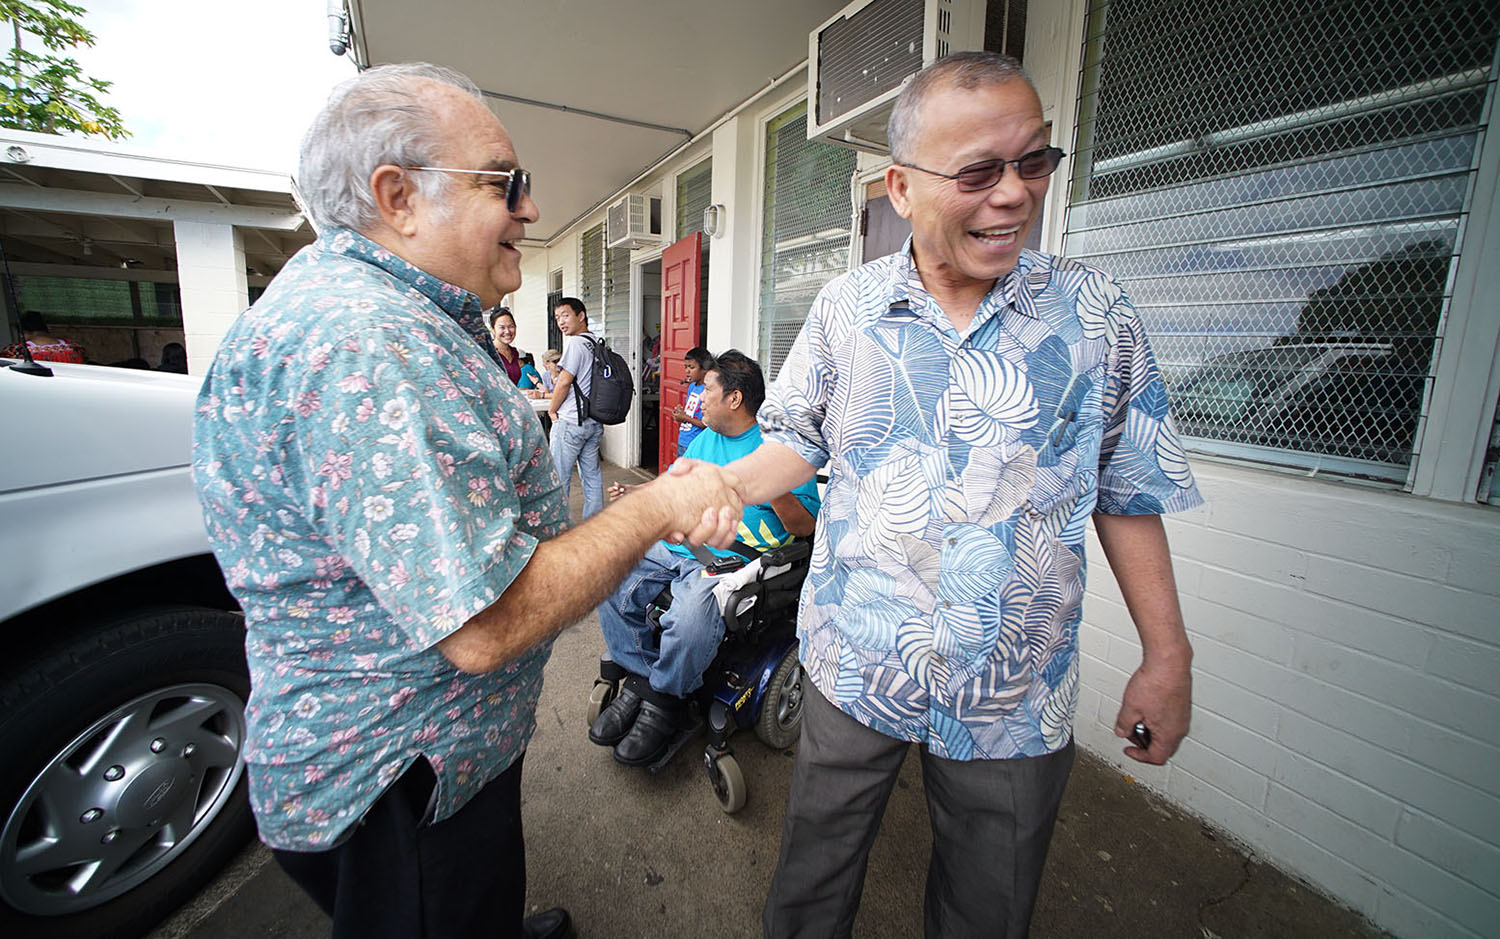 <p>Asterio Takesy, right, the ambassador to the U.S. from the Federated States of Micronesia, helped immigrants sign up for health care at the Kalihi church earlier this year.</p>